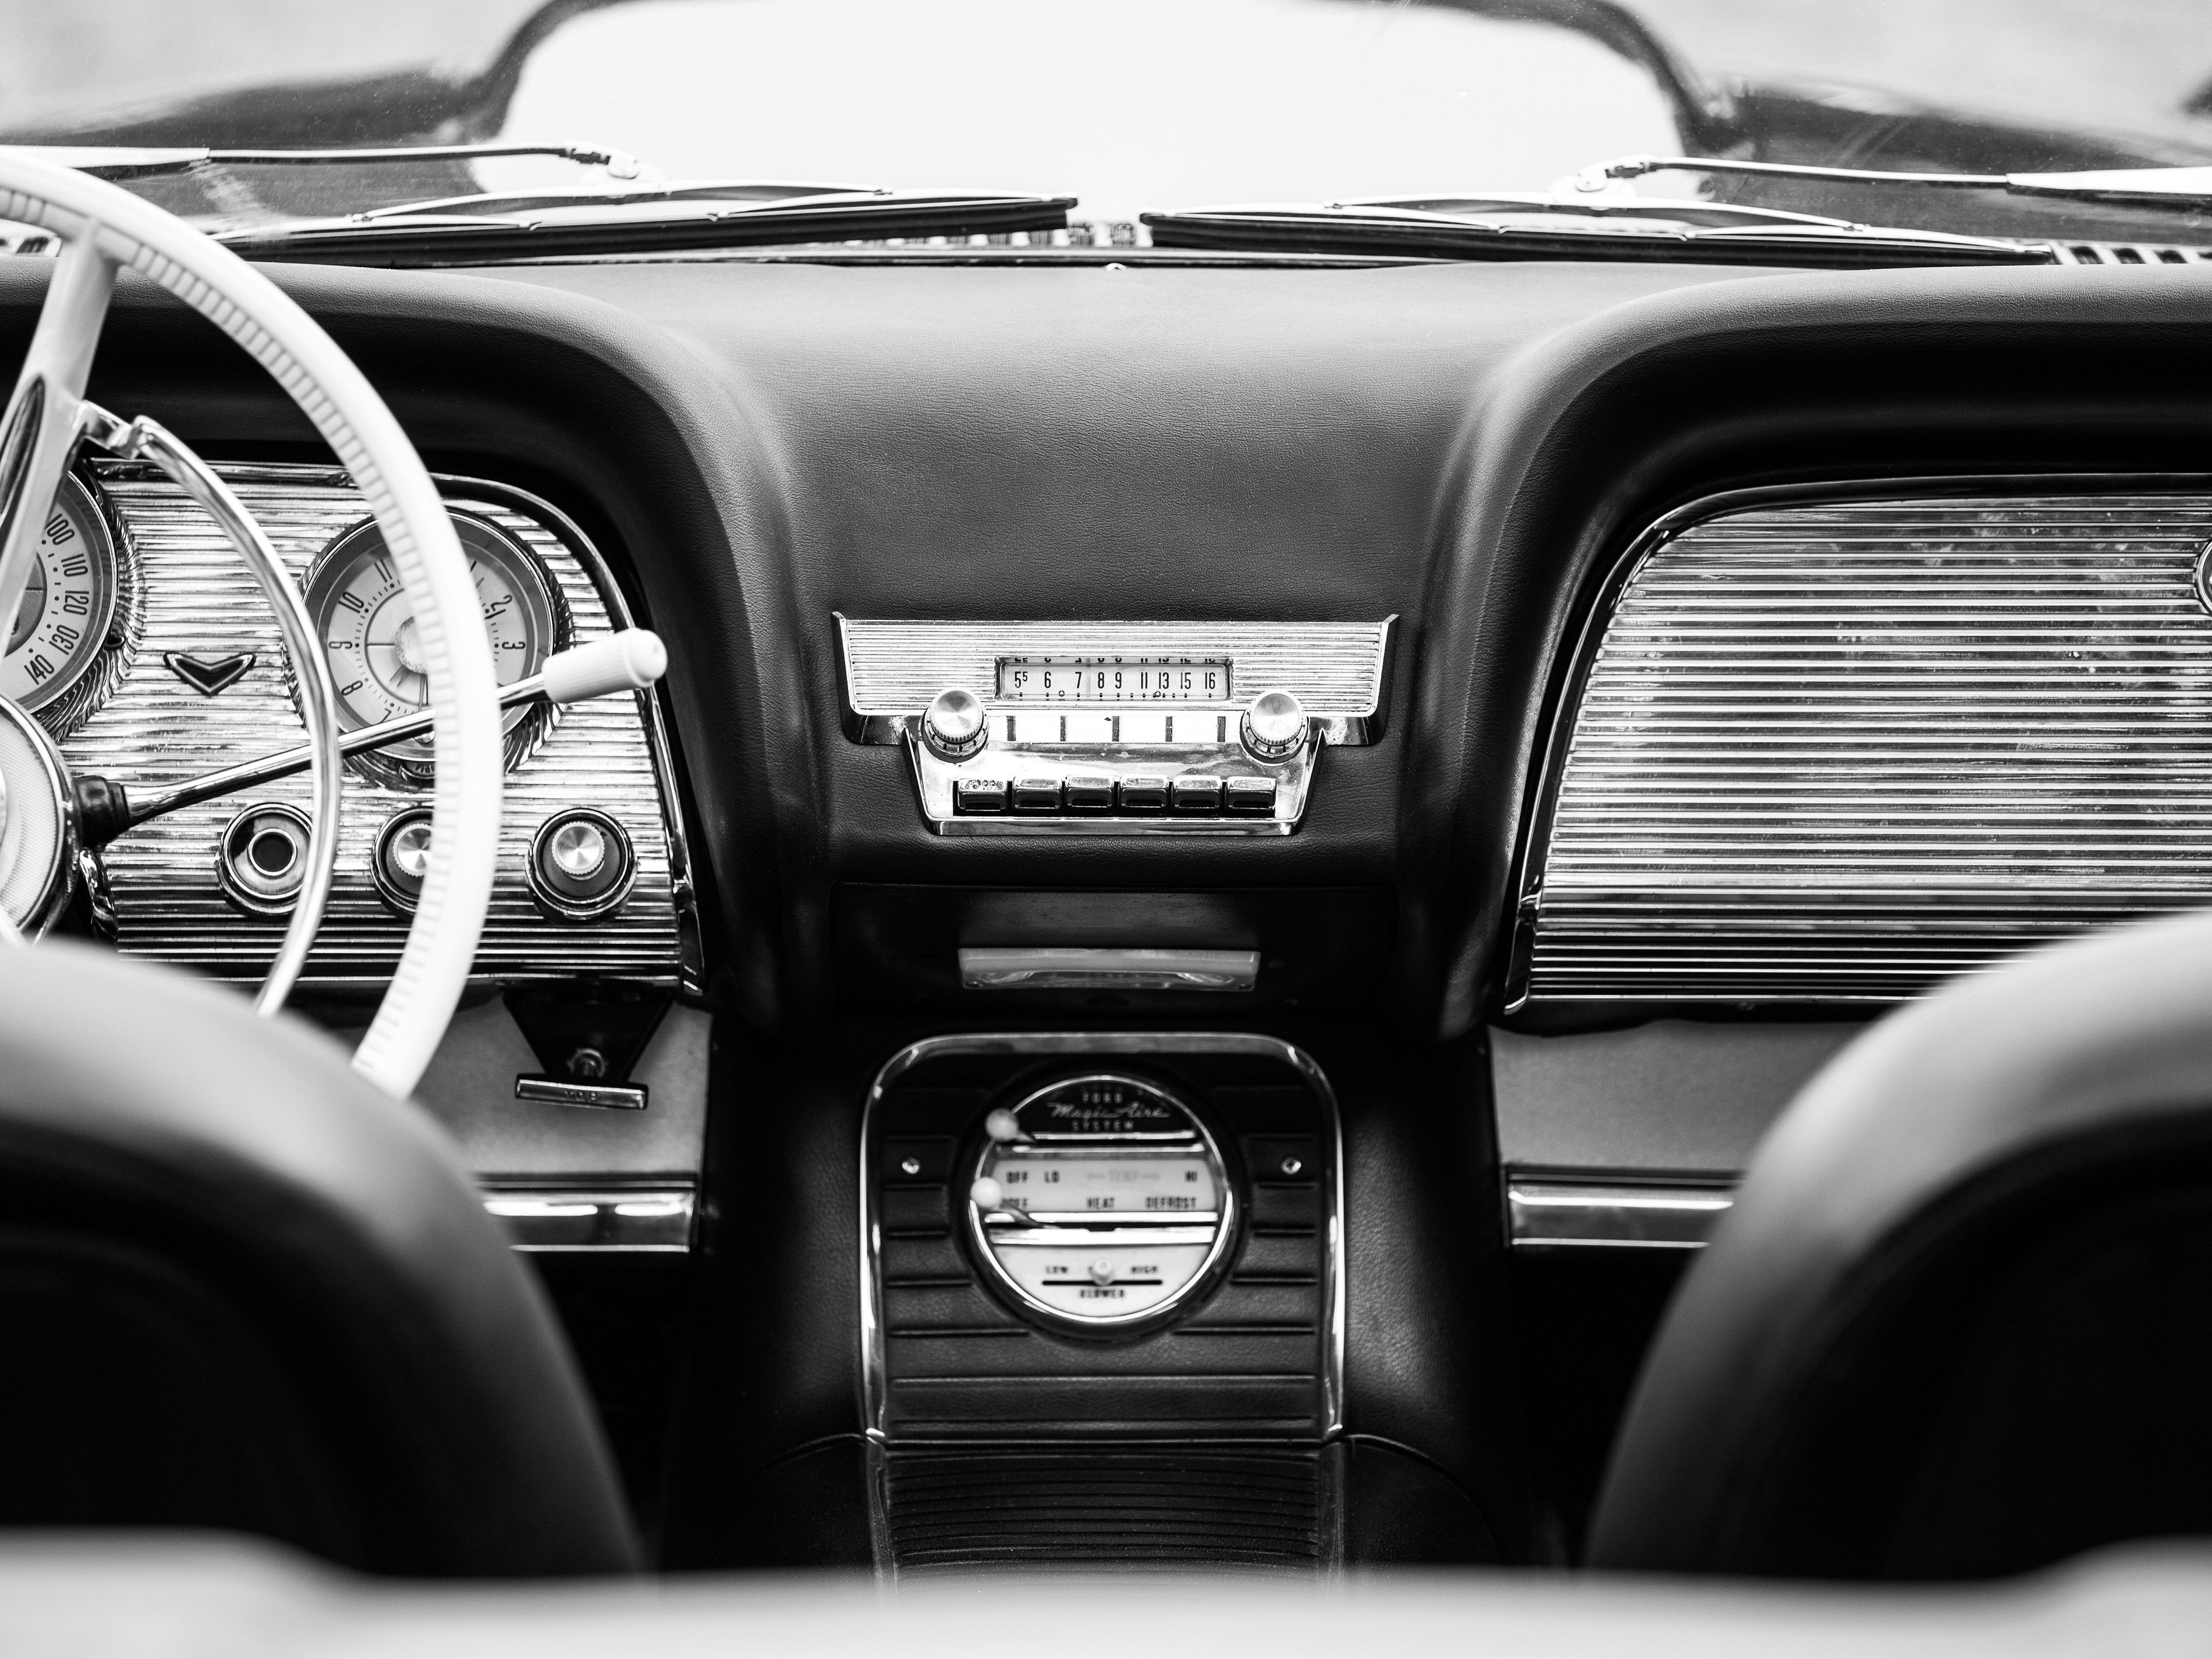 The cost of authentic car accessories